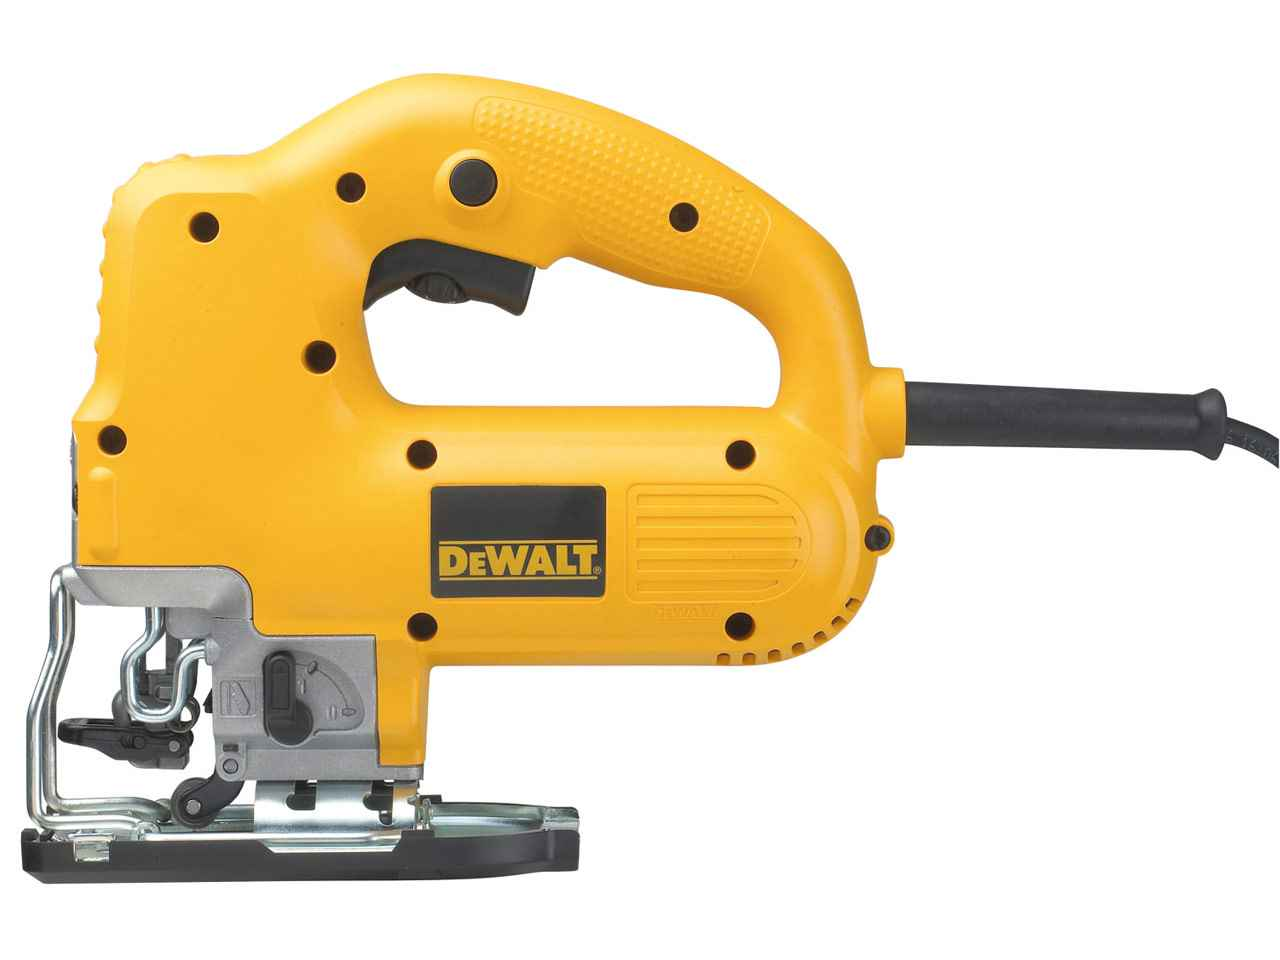 Dewalt dw341k 240v compact top handle jigsaw 550w keyboard keysfo Image collections